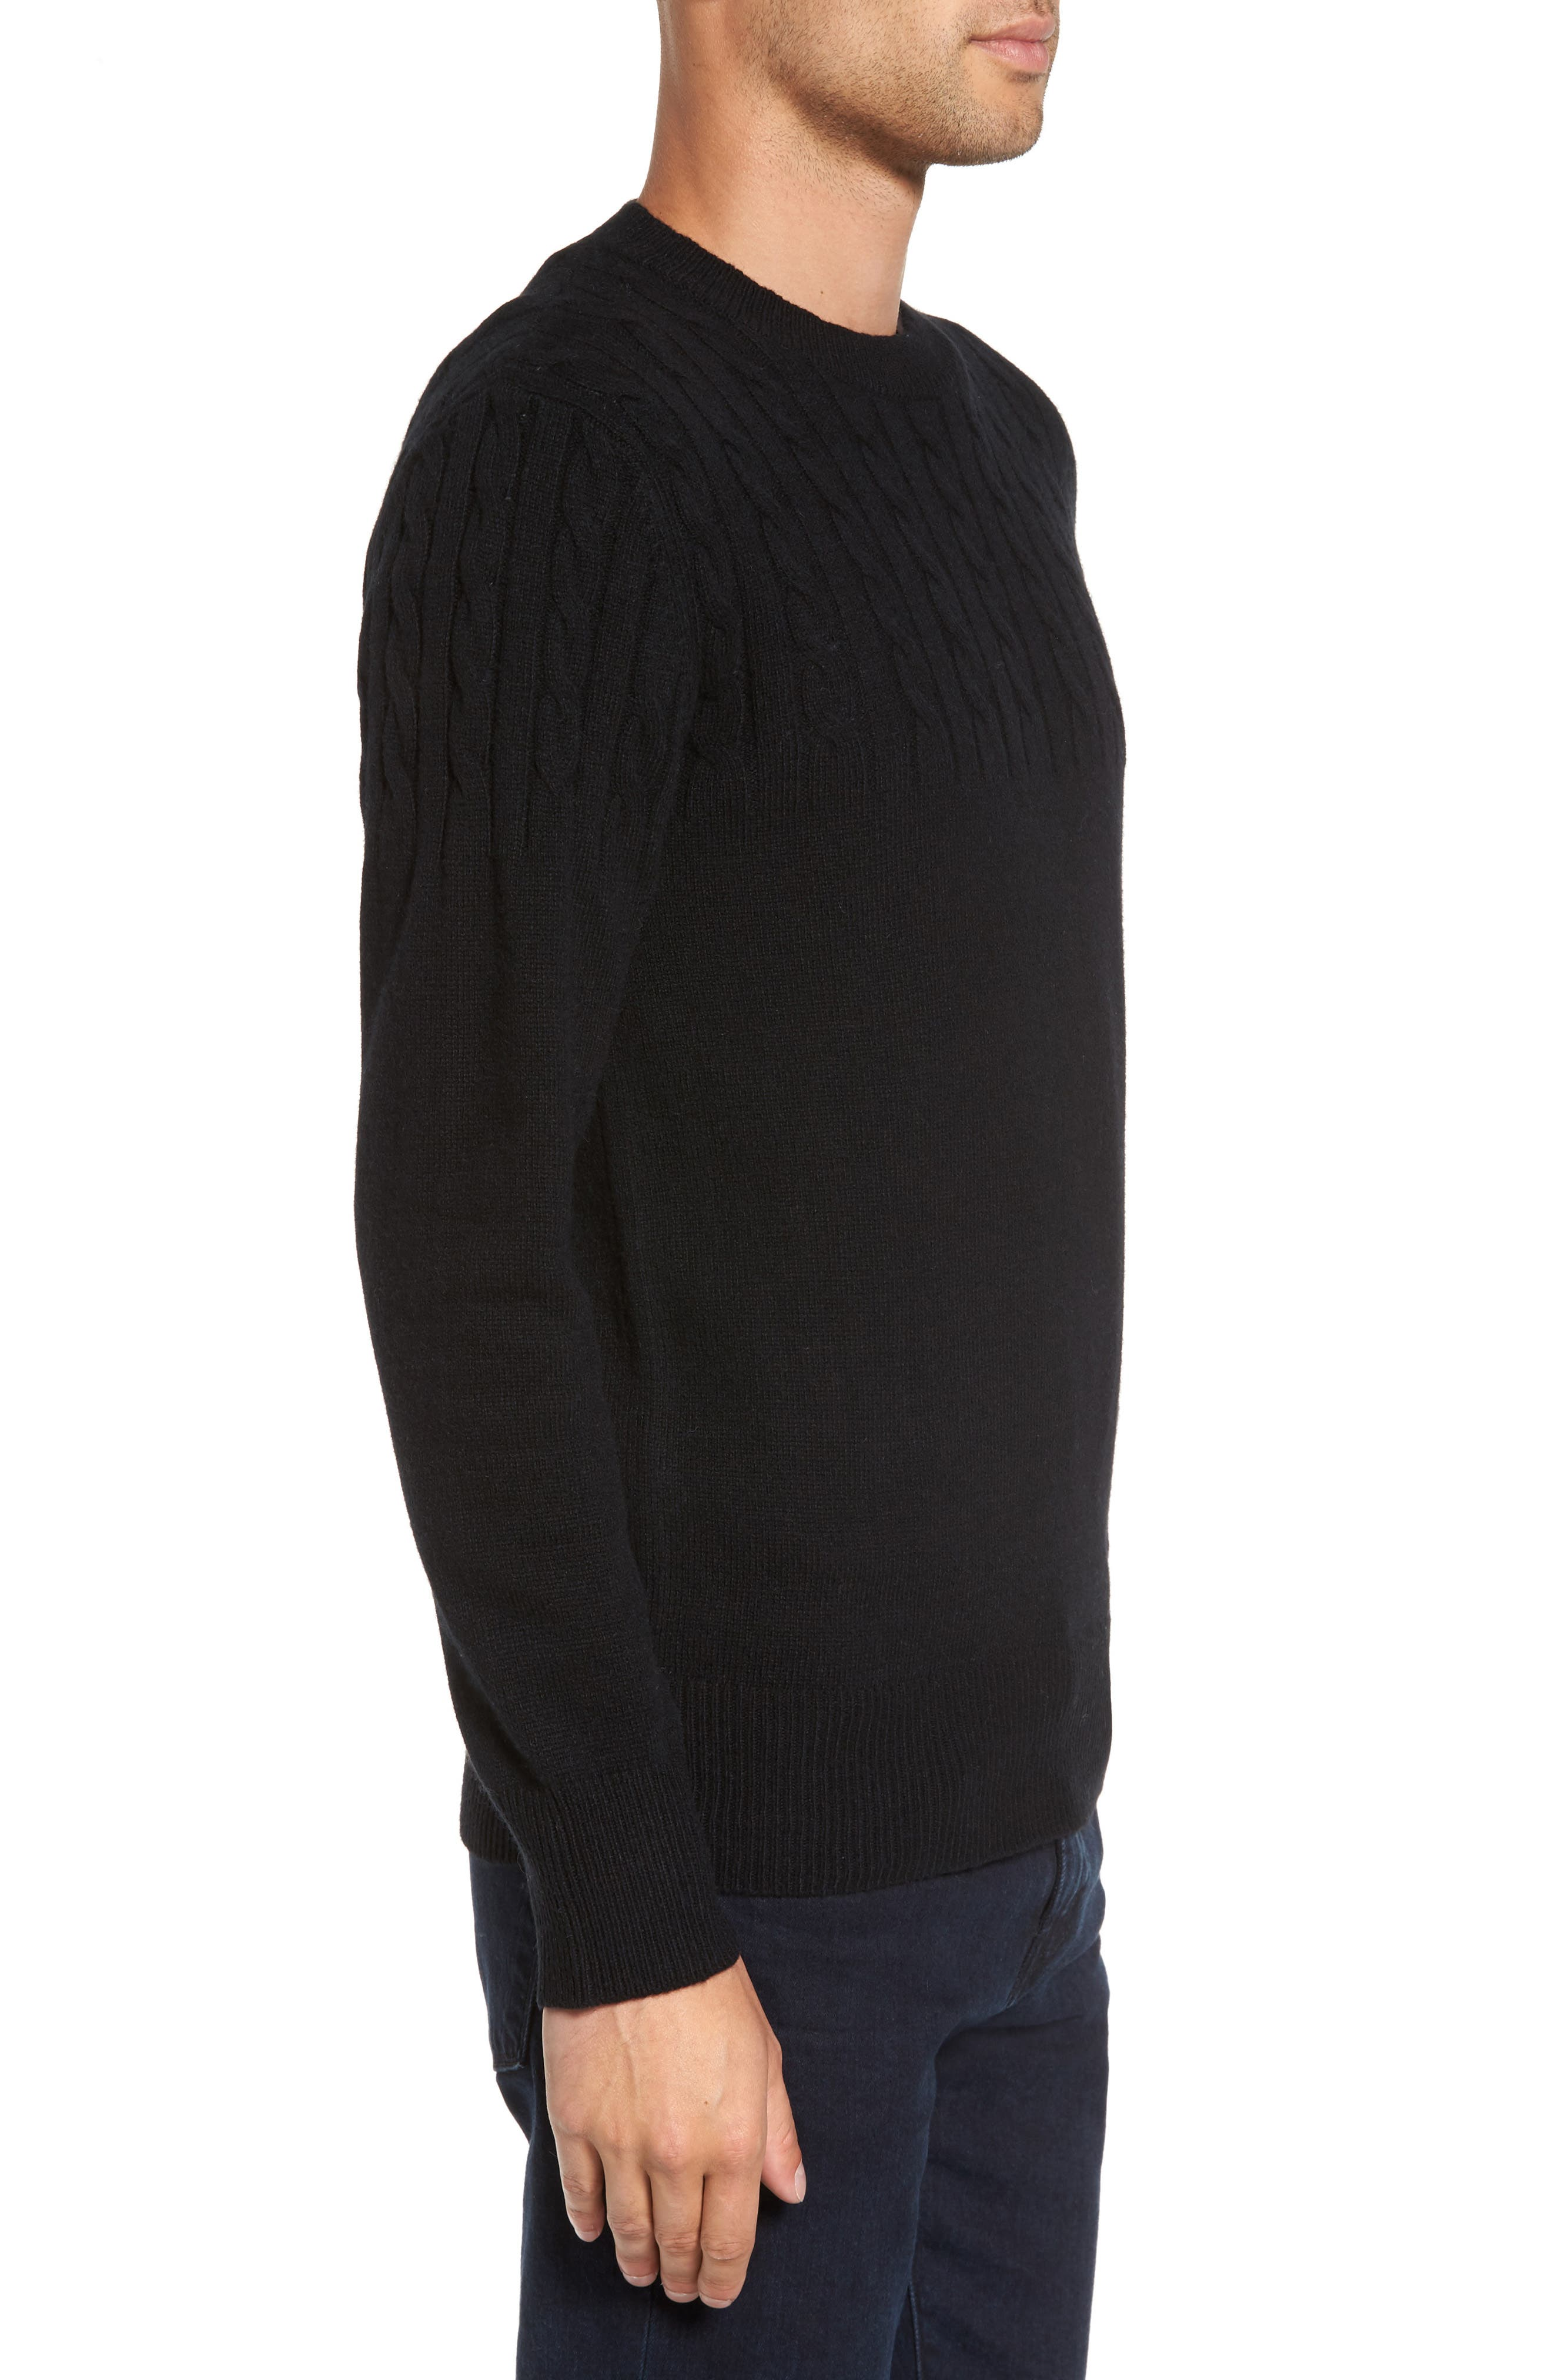 Wool Cable Knit Sweater,                             Alternate thumbnail 3, color,                             001